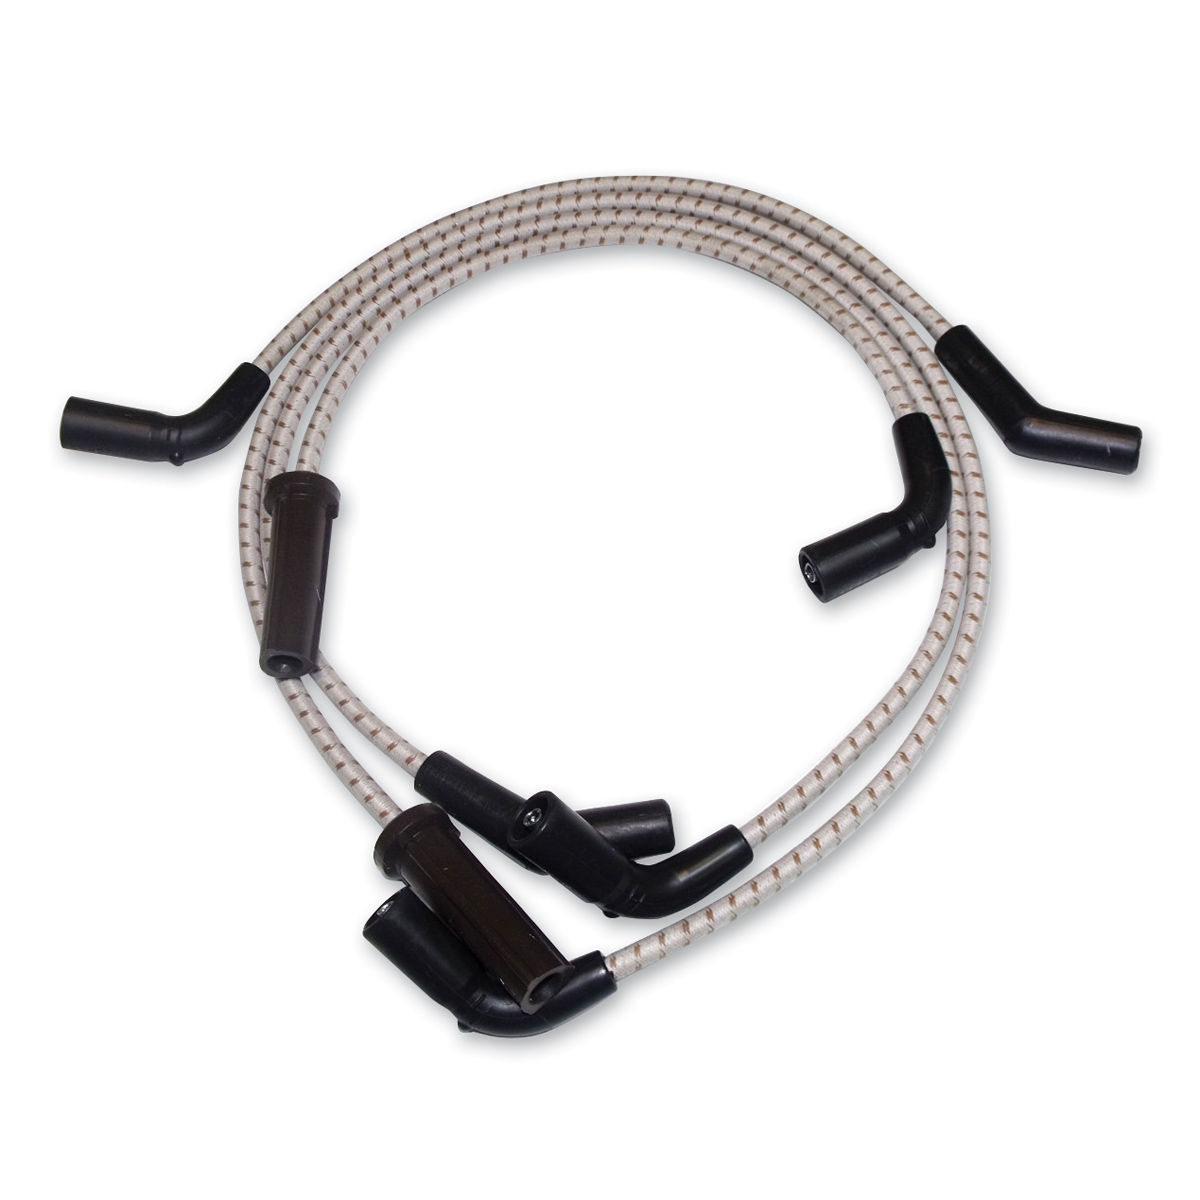 Sumax Grey with Brown Tracer Thunder Braided Cloth Spark Plug Wire Set